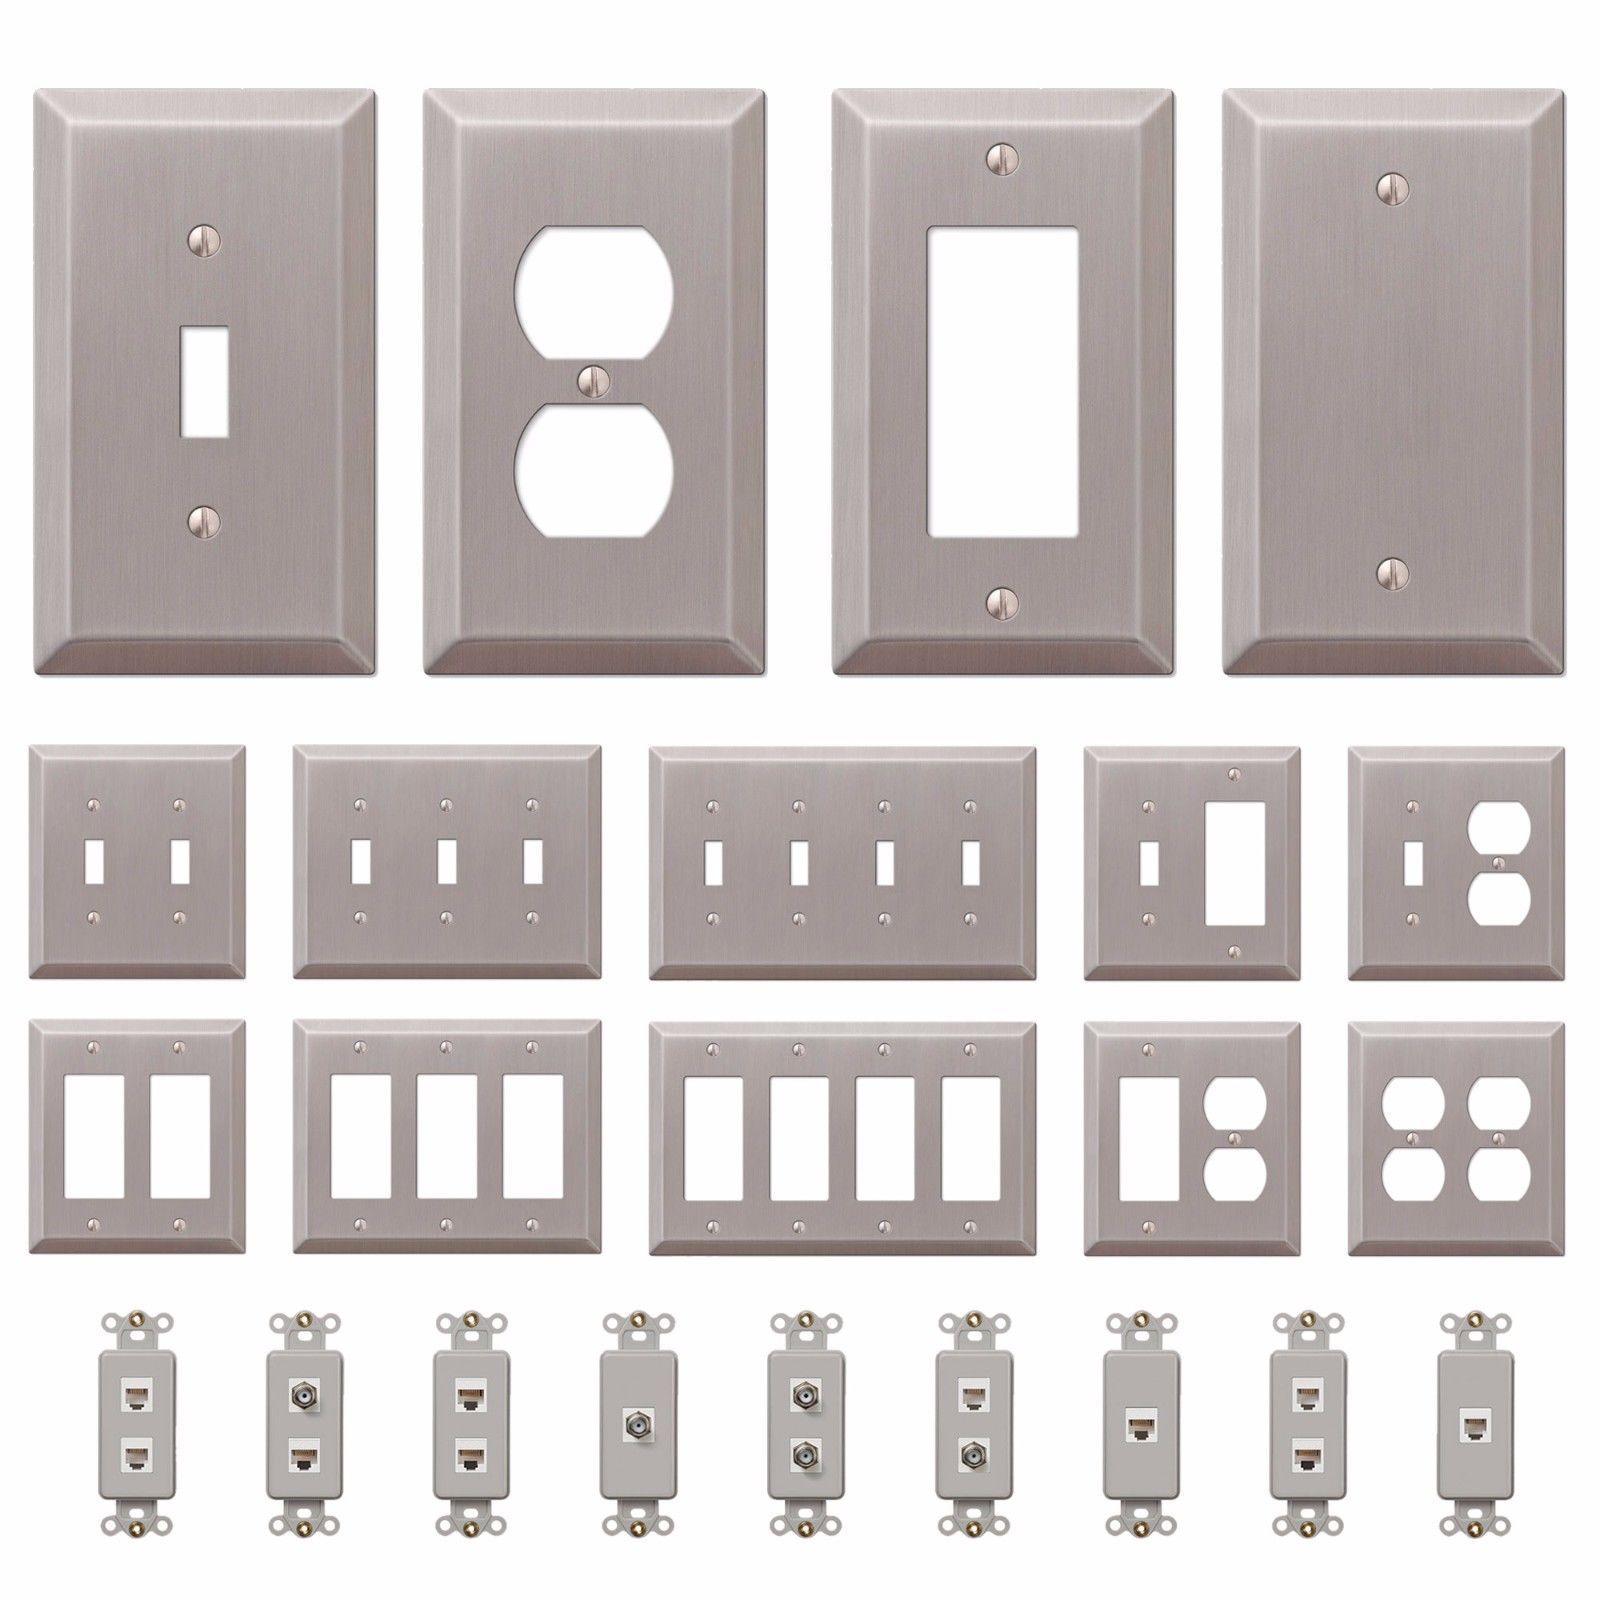 Wall Switch Plate Outlet Cover Toggle Duplex Rocker Brushed Satin Nickel Combined Shipping Add 25 Cents For Each Additional